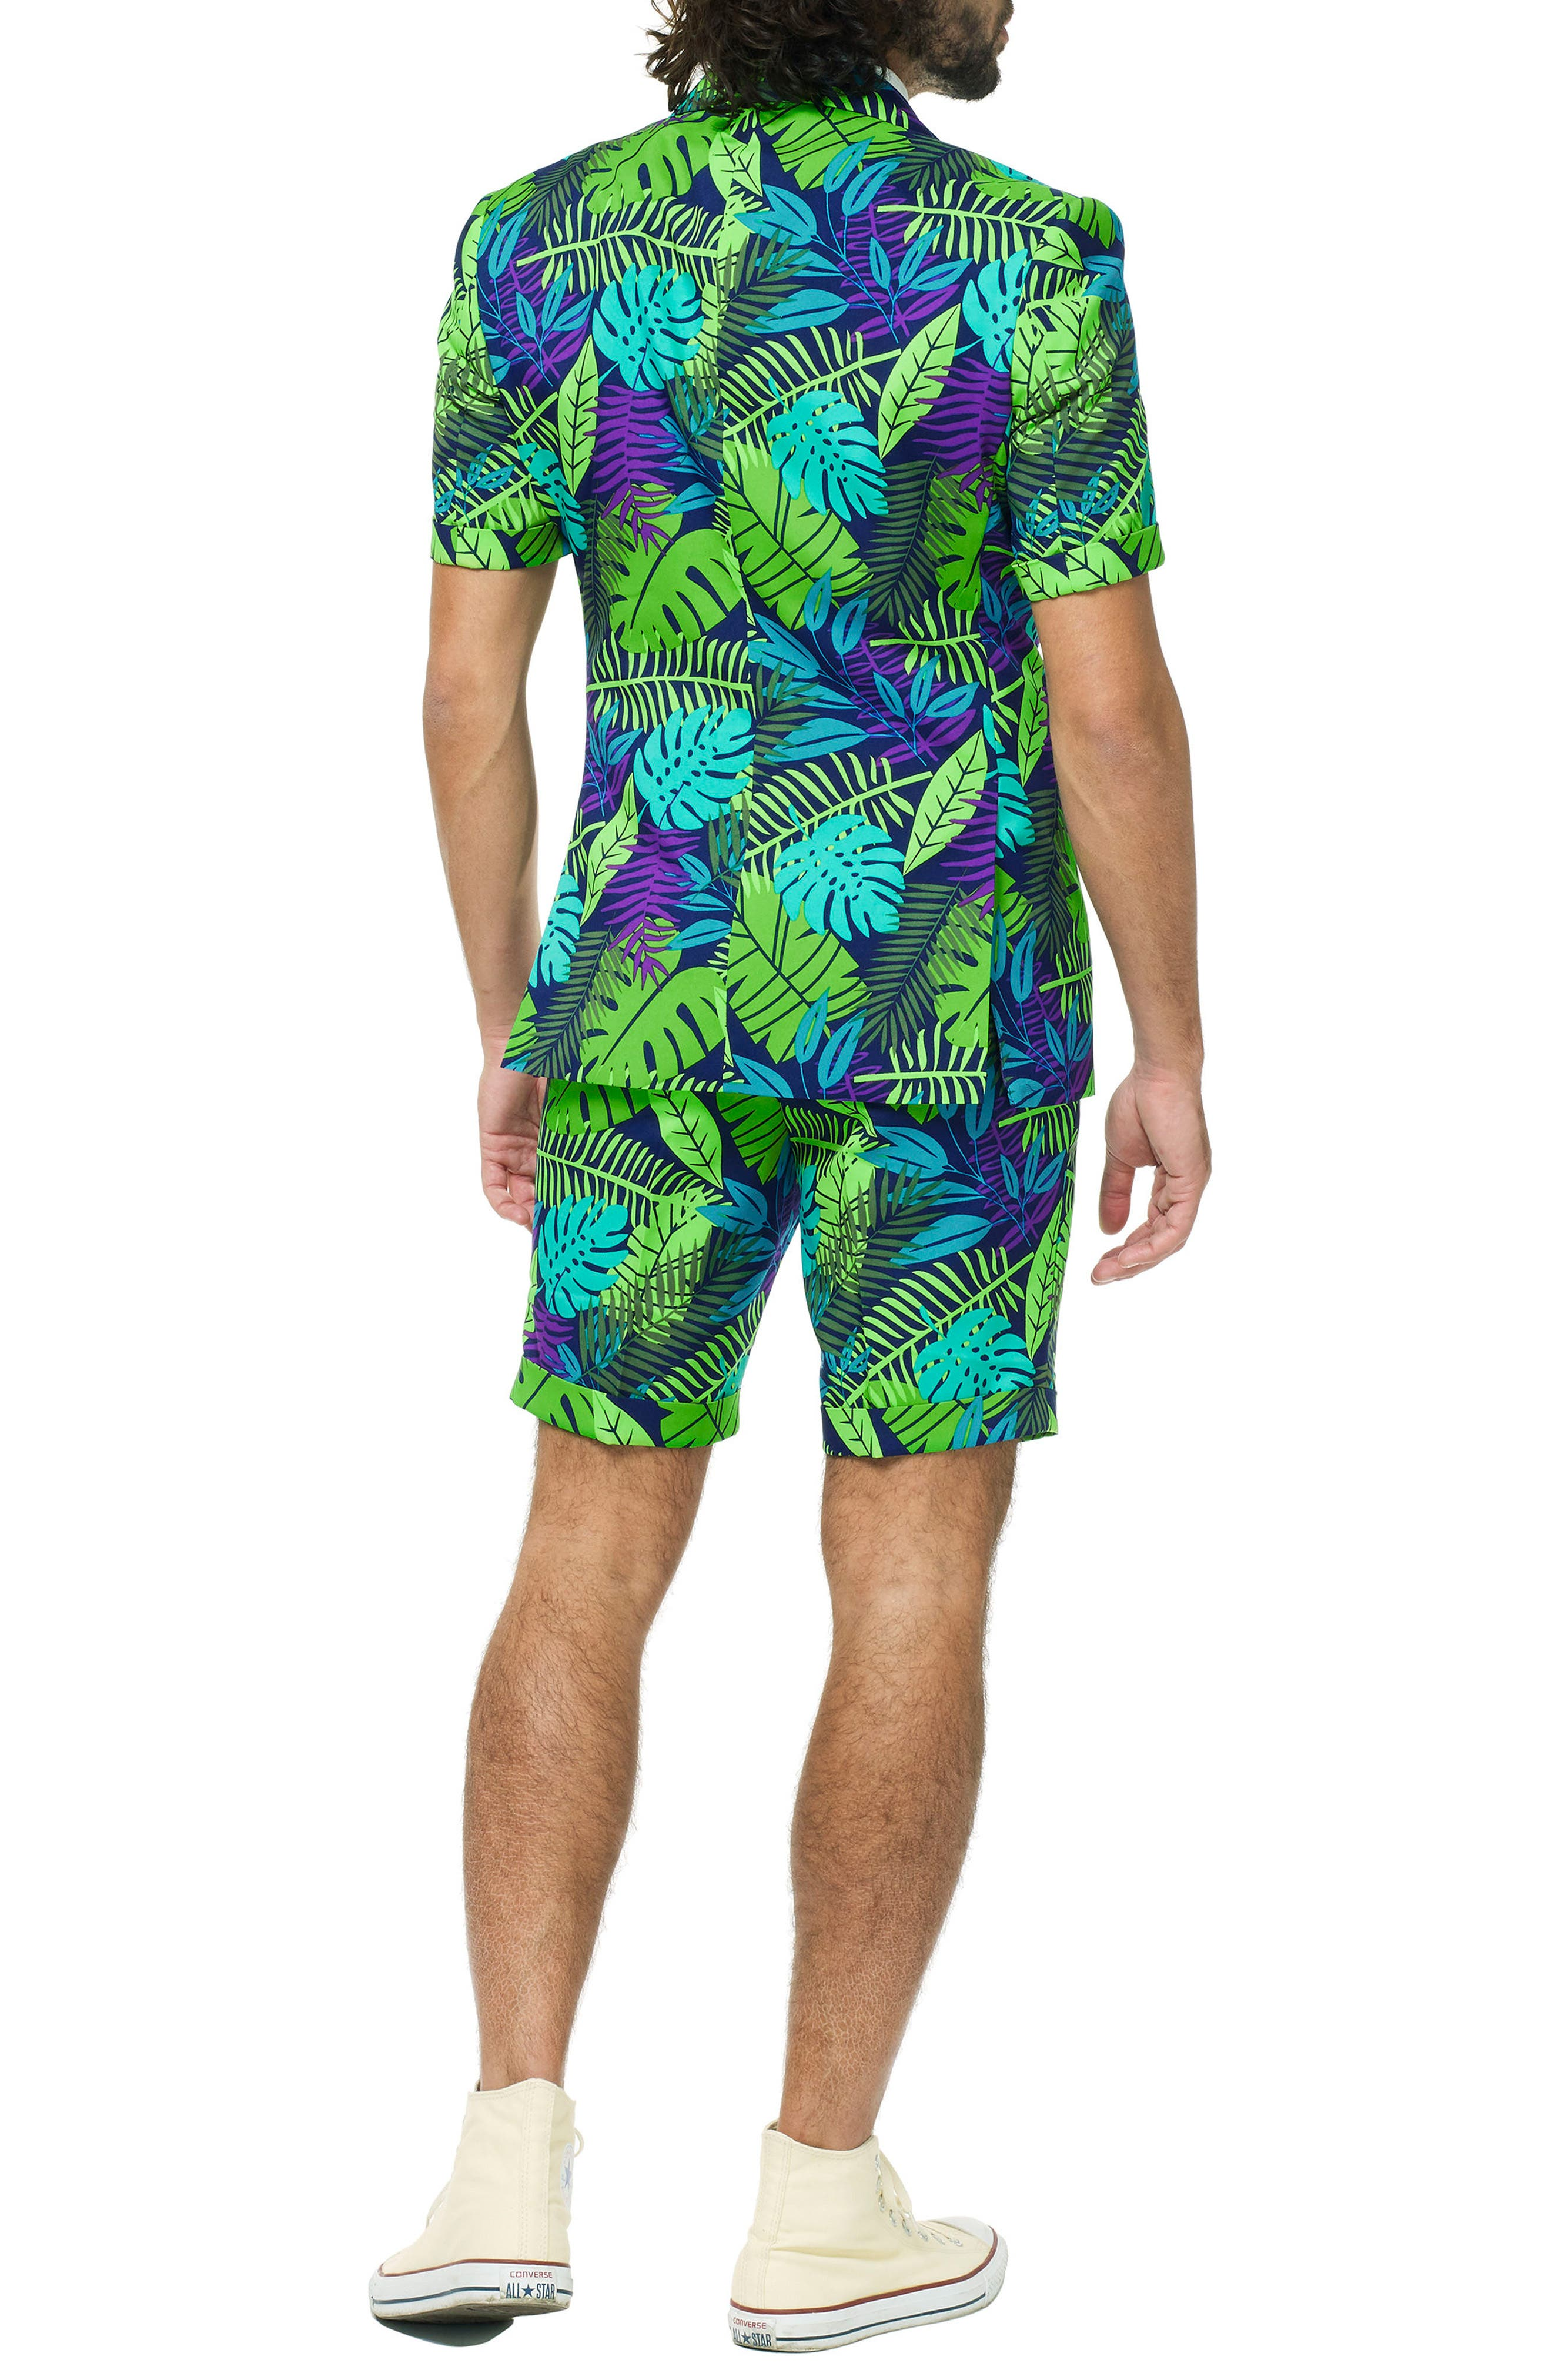 Juicy Jungle Trim Fit Two-Piece Short Suit with Tie,                             Alternate thumbnail 2, color,                             Miscellaneous